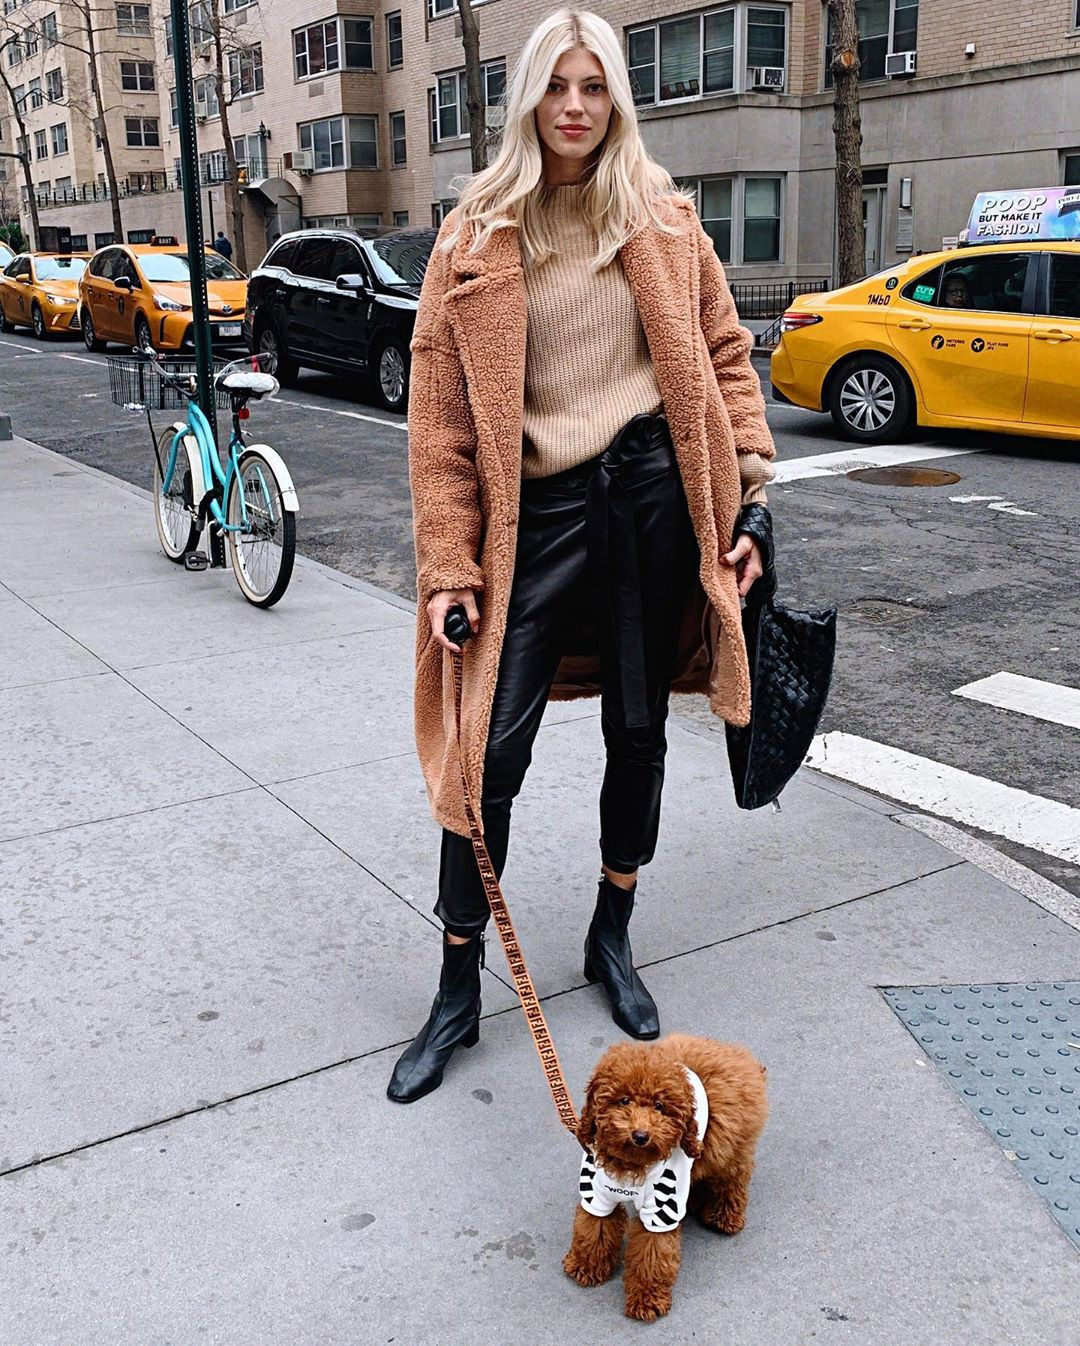 Devon Windsor fur clothing, fur outfit ideas, model photography